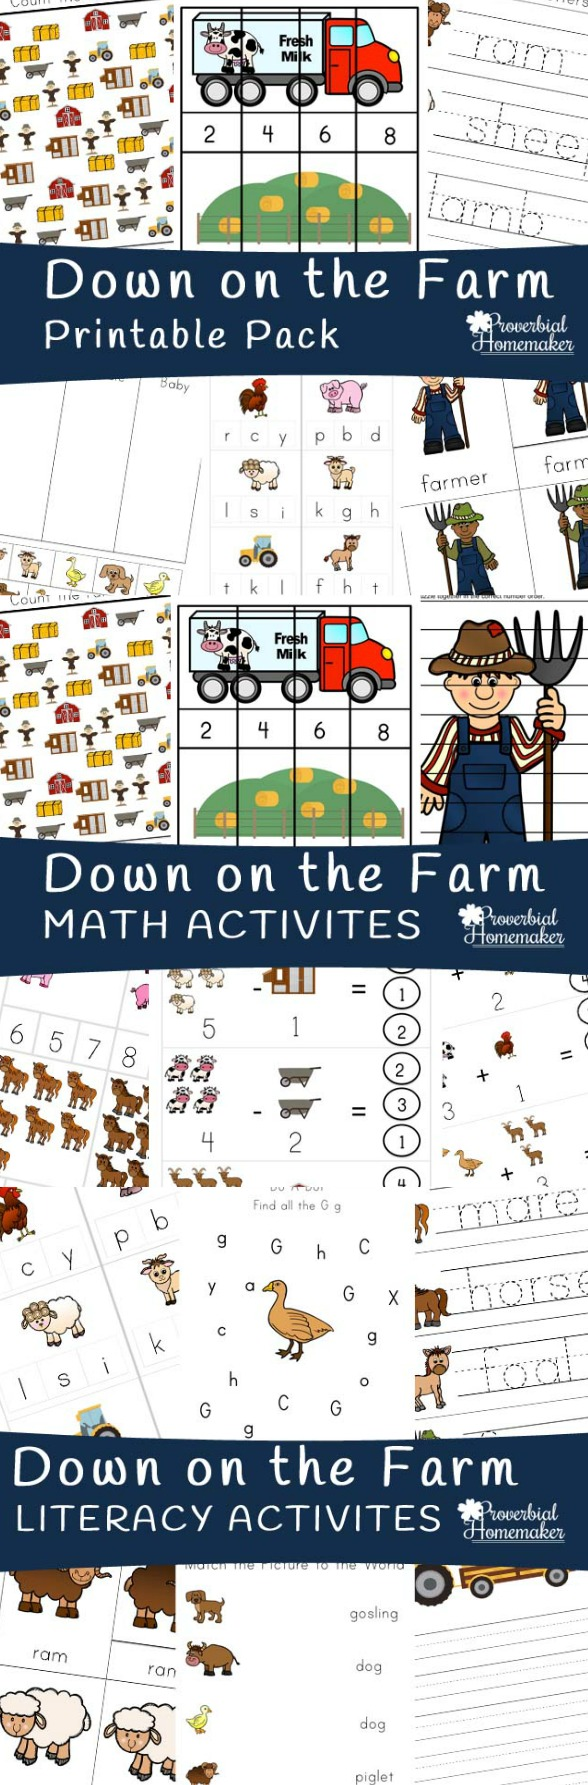 Download this farm printable pack FREE for subscribers! LOVE the fun activities for my kids in this one - perfect for summer or fall farm activities. Maybe to use around a field trip? Cute!